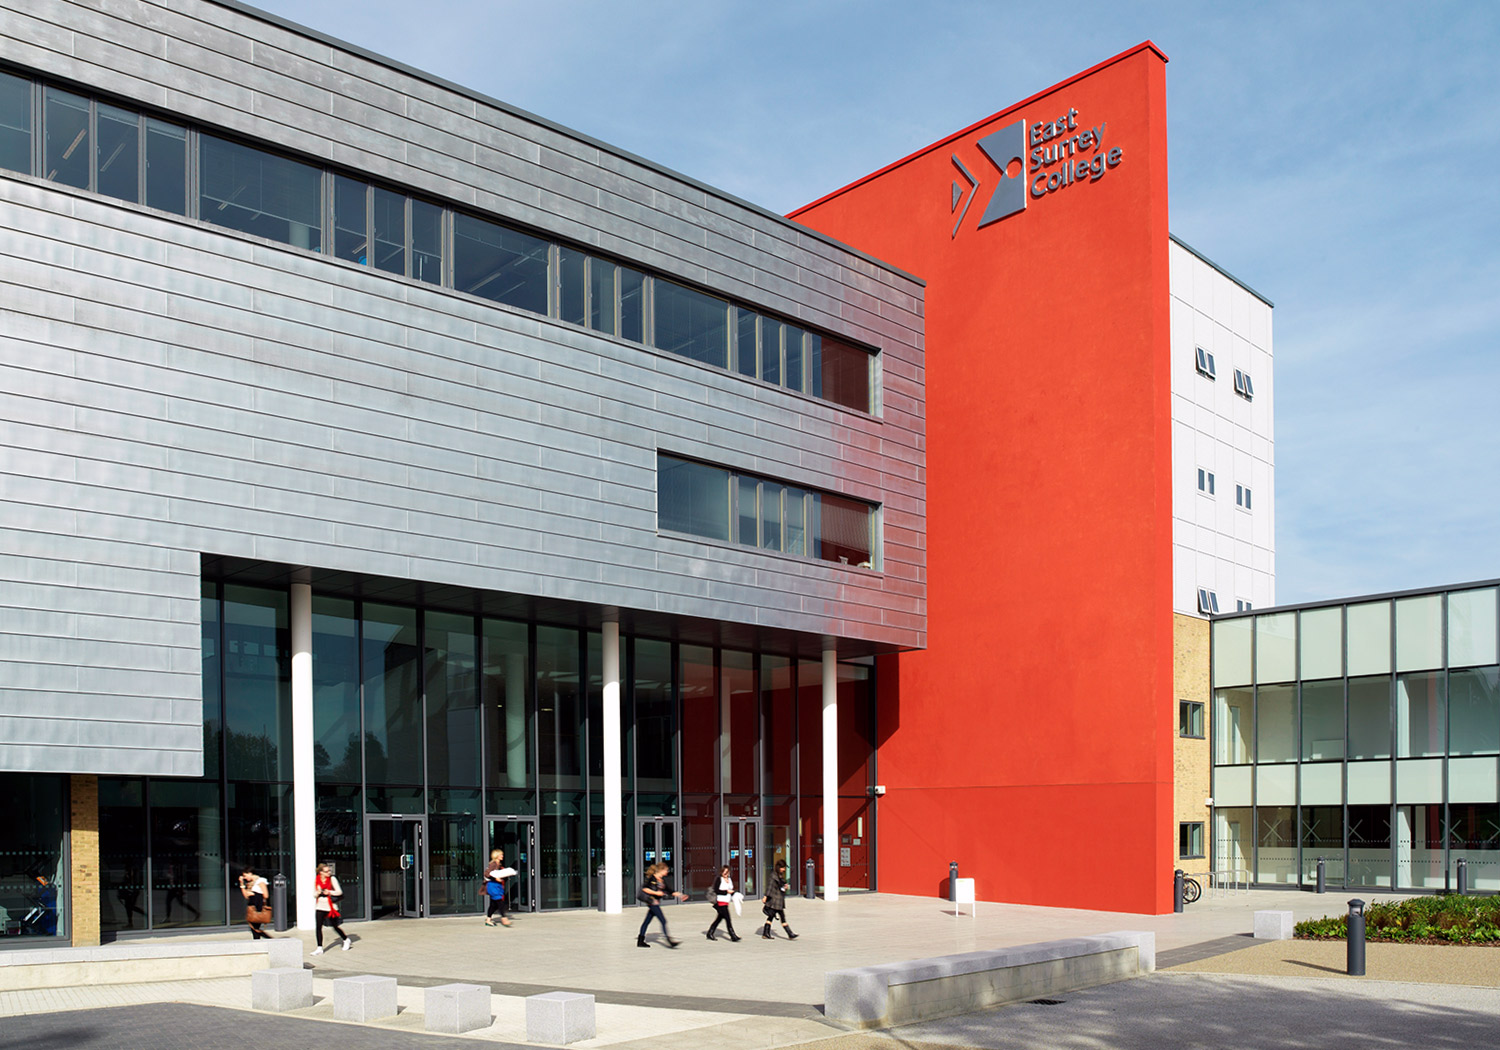 Projects-Education-EastSurreyCollege-Entrance-1500x1050